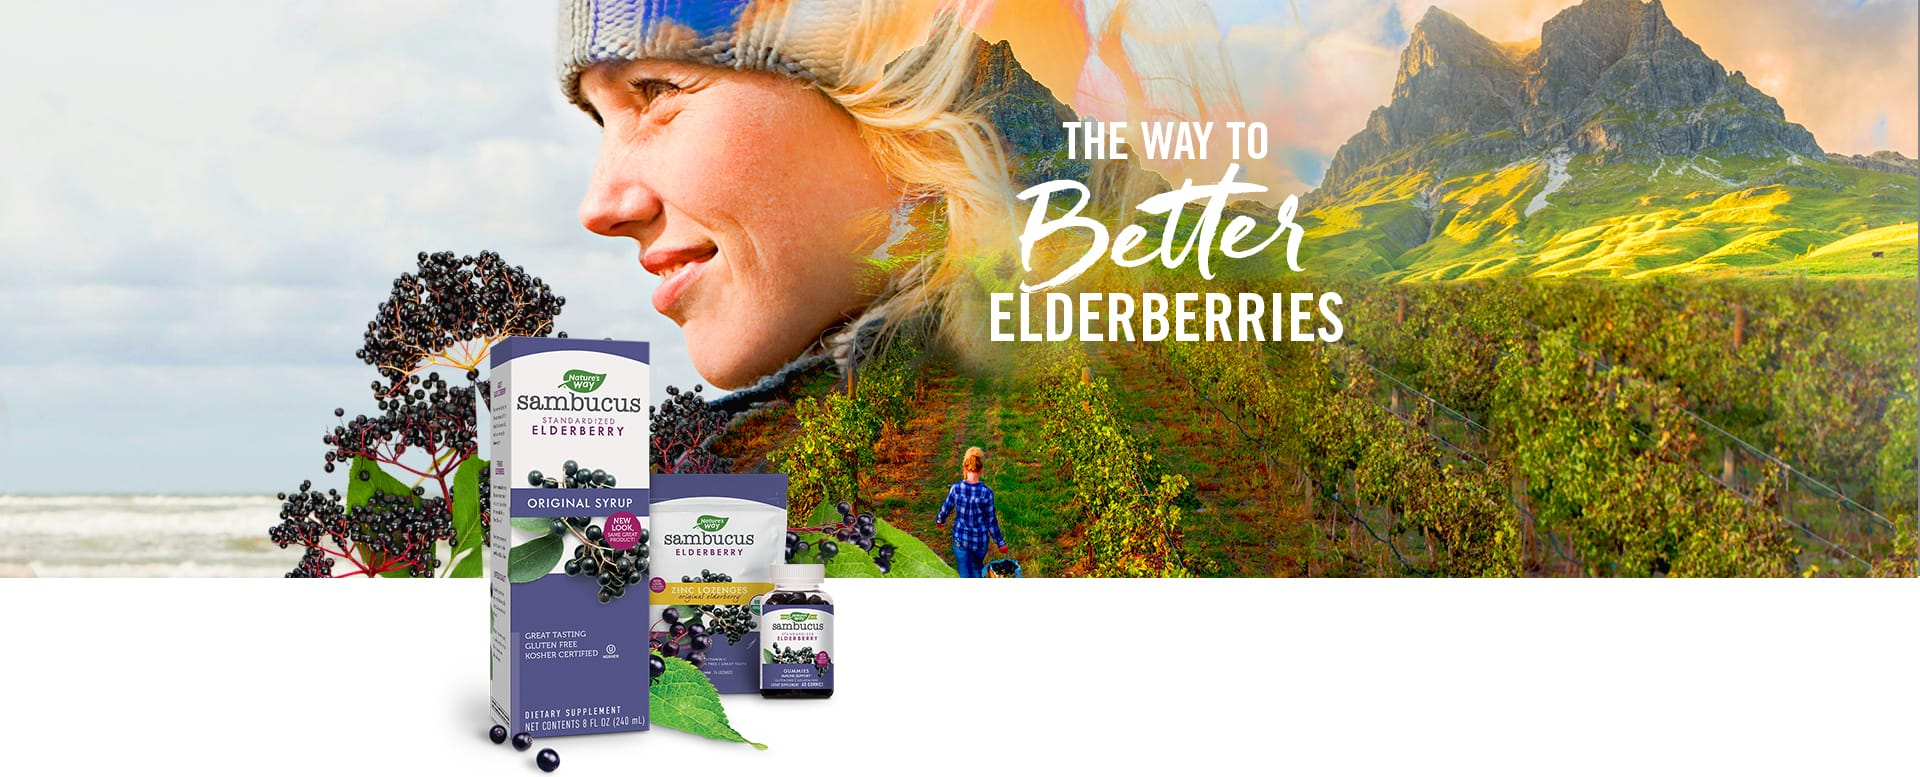 Woman in Elderberry Vineyard with Sambucus Products - The Way to Better Elderberry